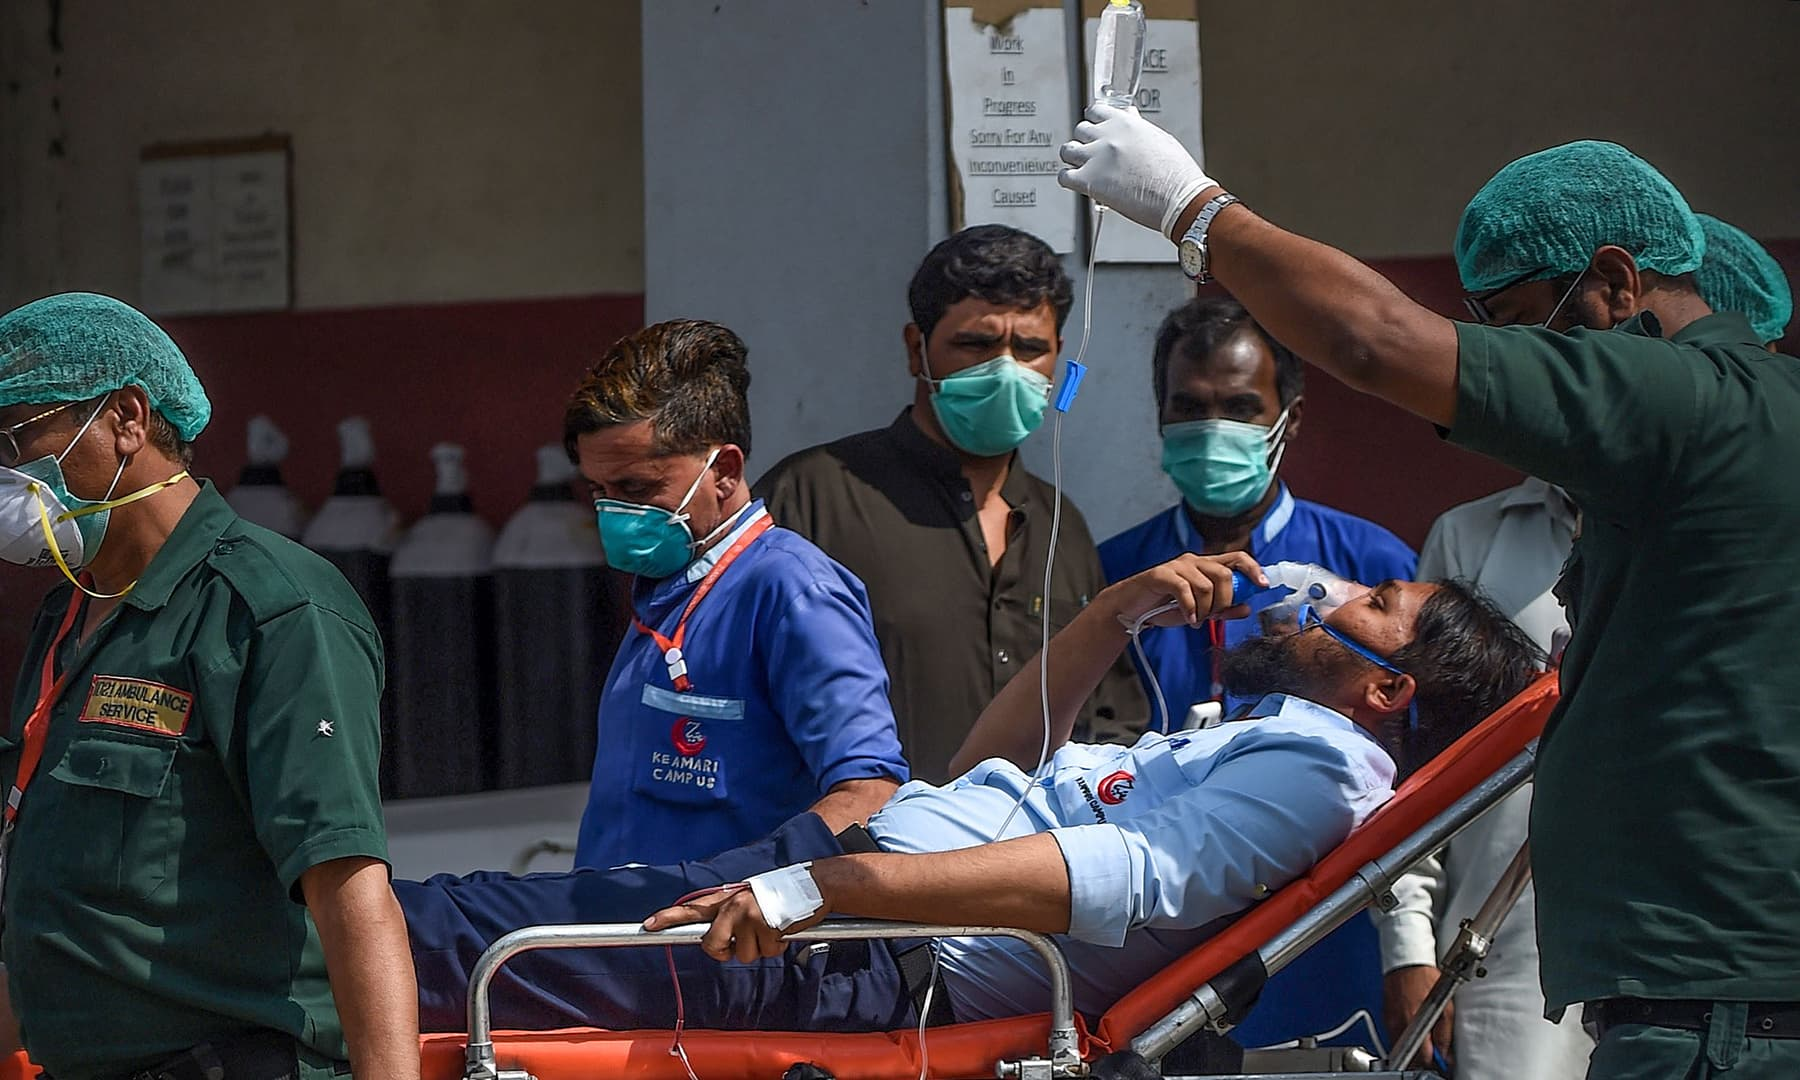 Paramedics personnel shift a patient on a stretcher into the hospital in Karachi on February 18, after the gas leak. — AFP